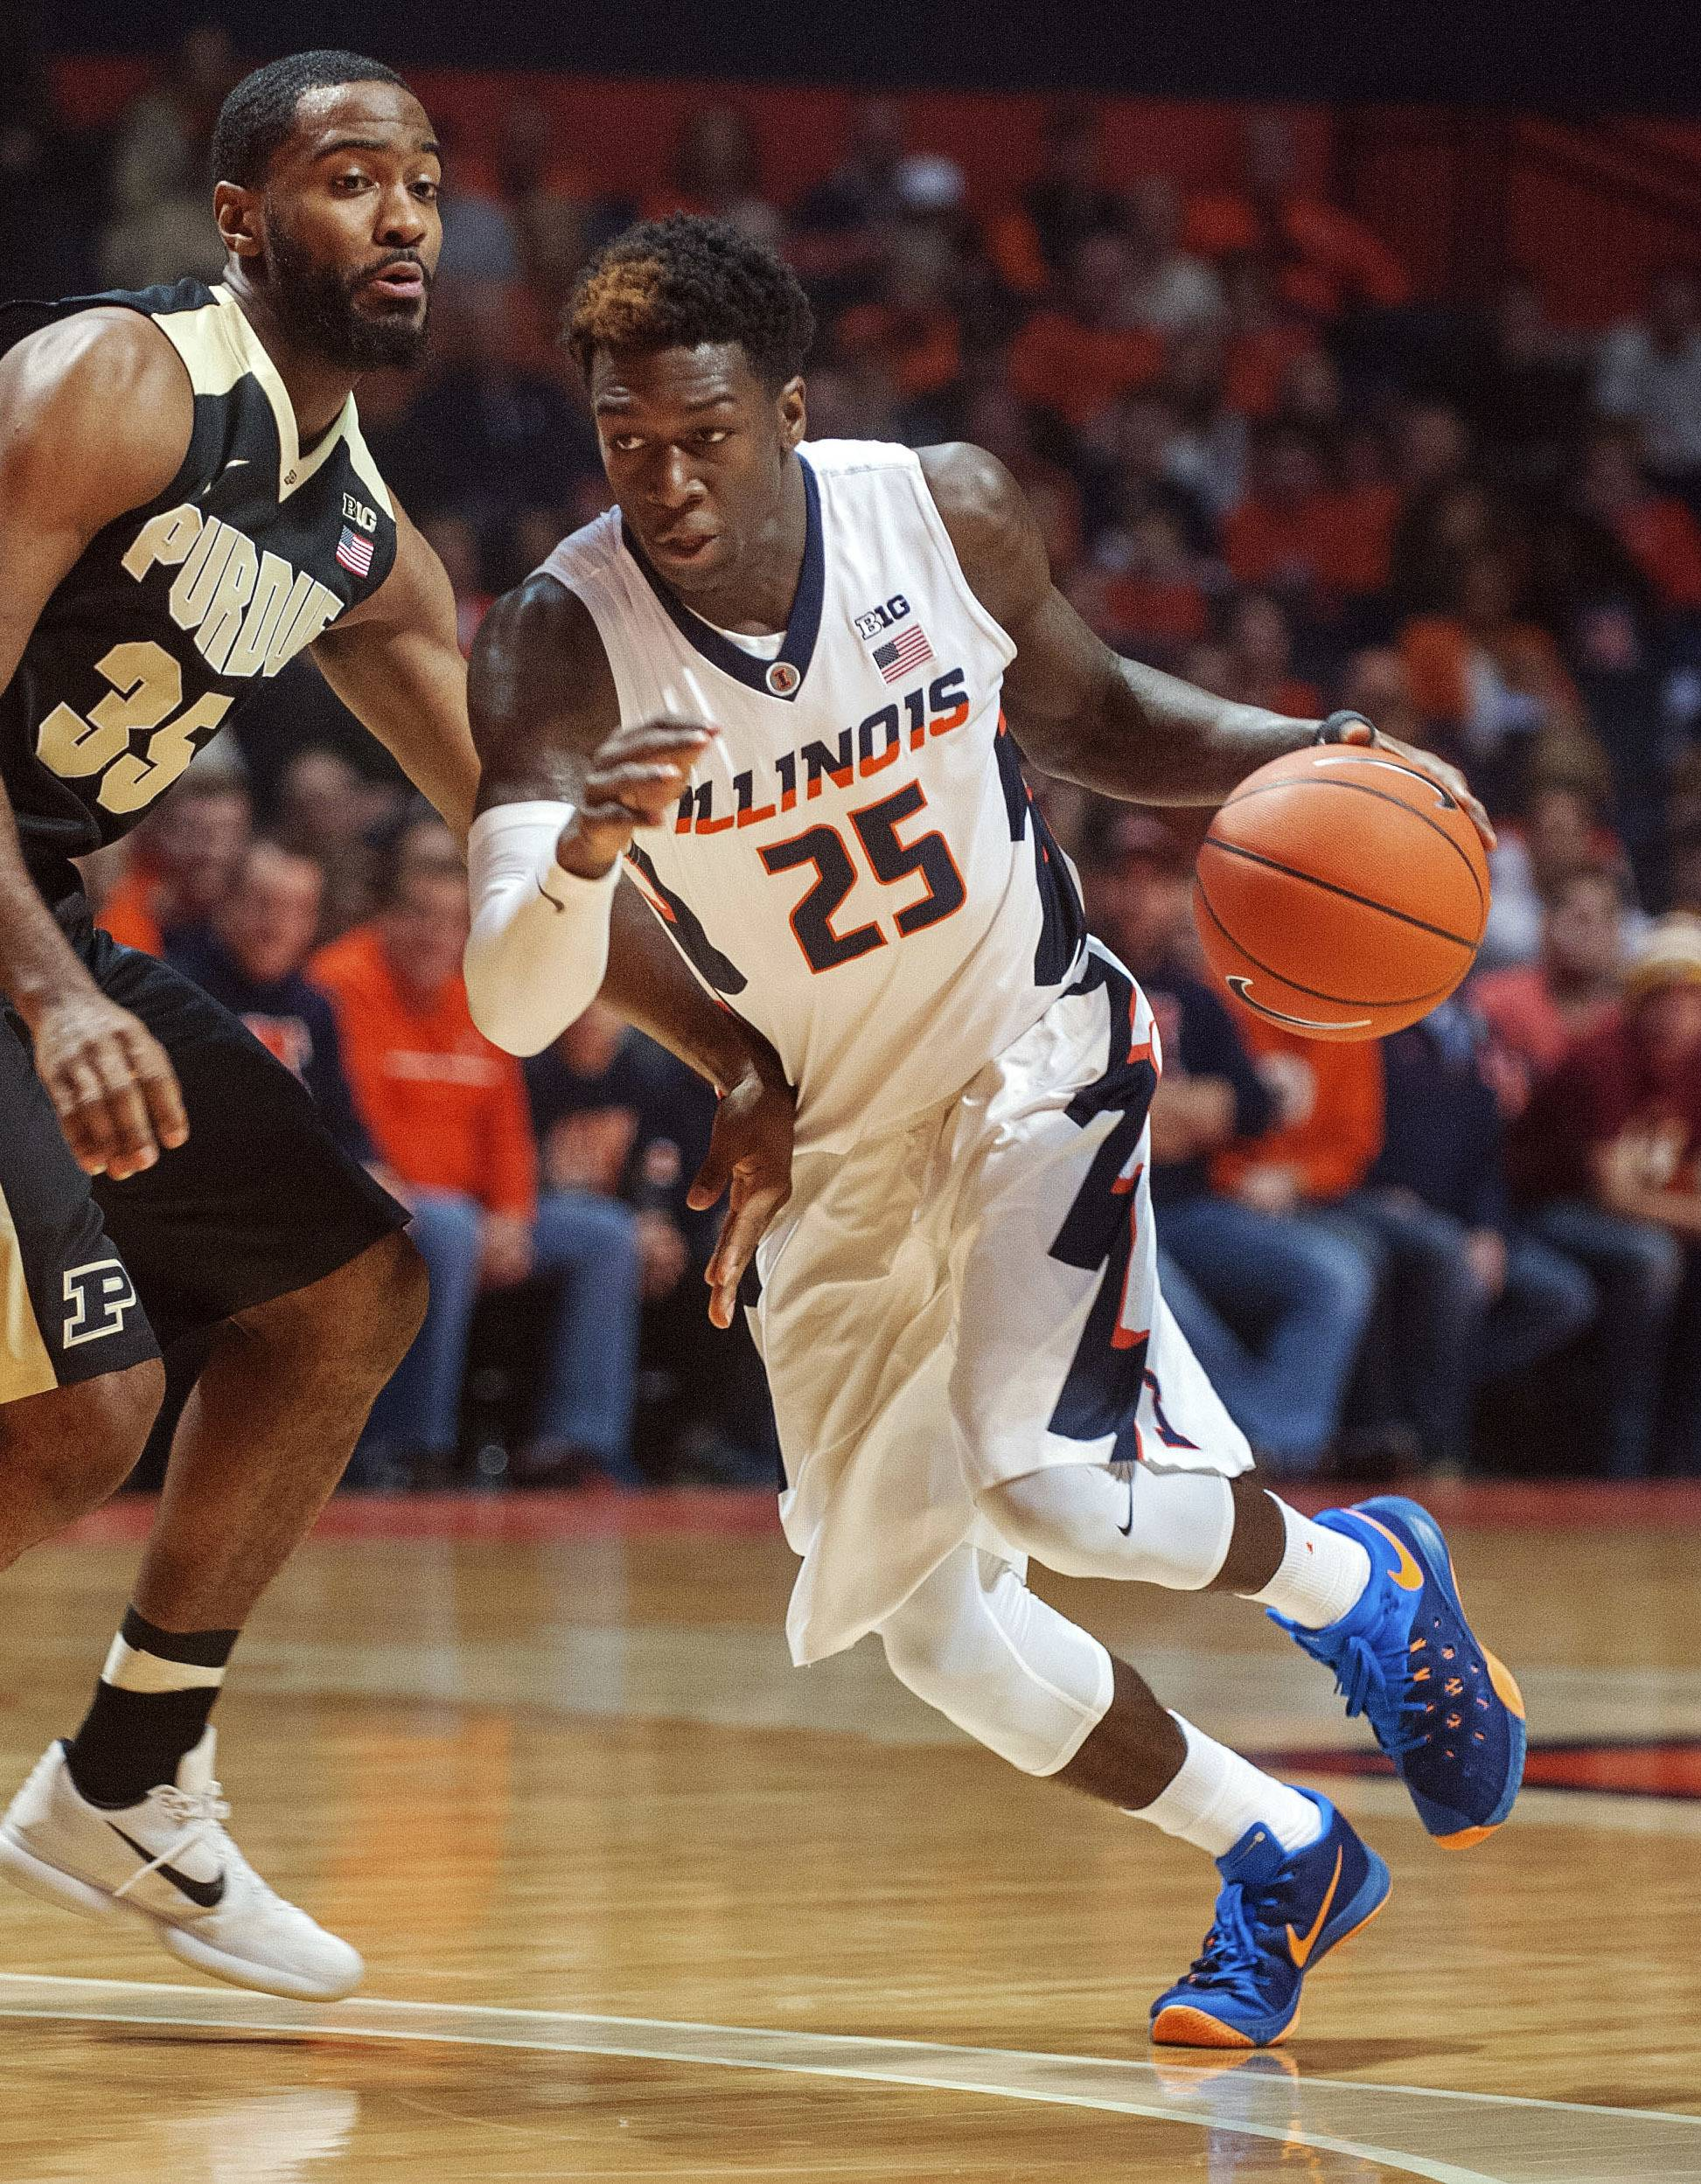 FILE — In this Jan. 10, 2016, file photo, Illinois' Kendrick Nunn (25) drives to the basket during an NCAA college basketball game against Purdue in Champaign, Ill. Nunn was dismissed from the basketball team on Tuesday, May 24, 2016, following his guilty plea to misdemeanor domestic battery. He was arrested in March after being accused of striking a woman. (AP Photo/Rick Danzl, File)